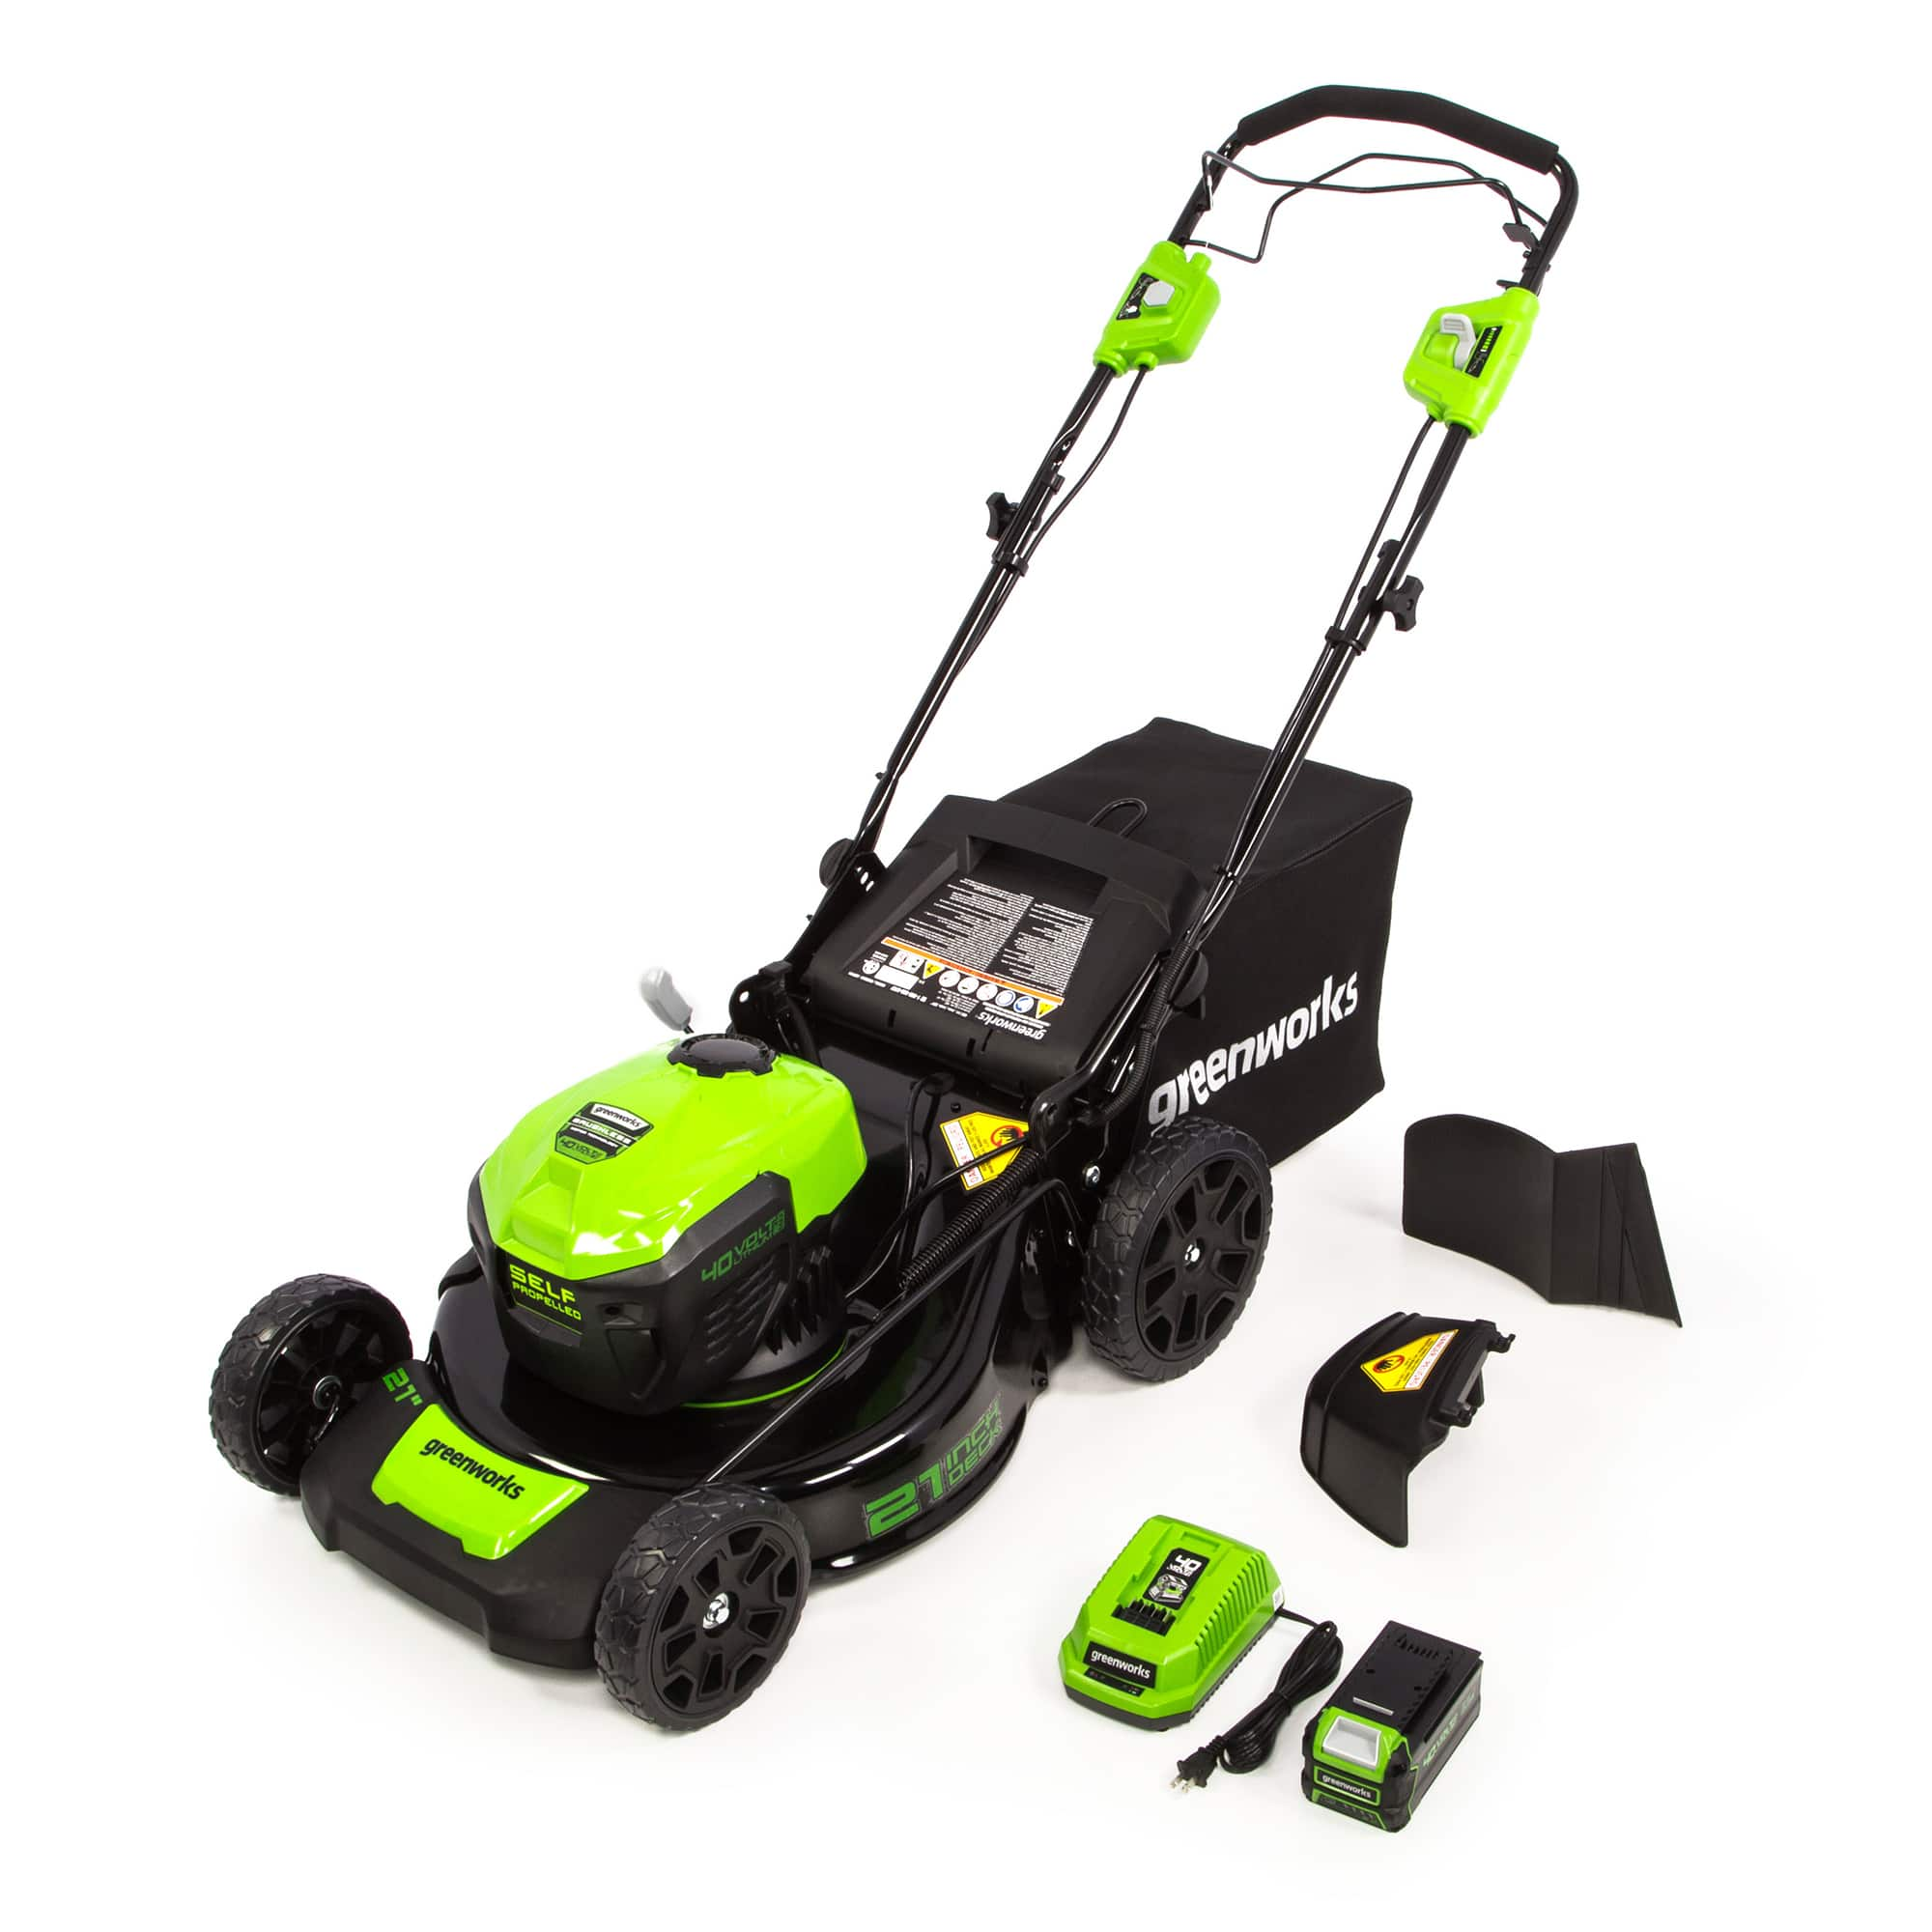 YMMV Greenworks 21-Inch 40V Self Propelled Mower 5Ah Battery 2516402 $89